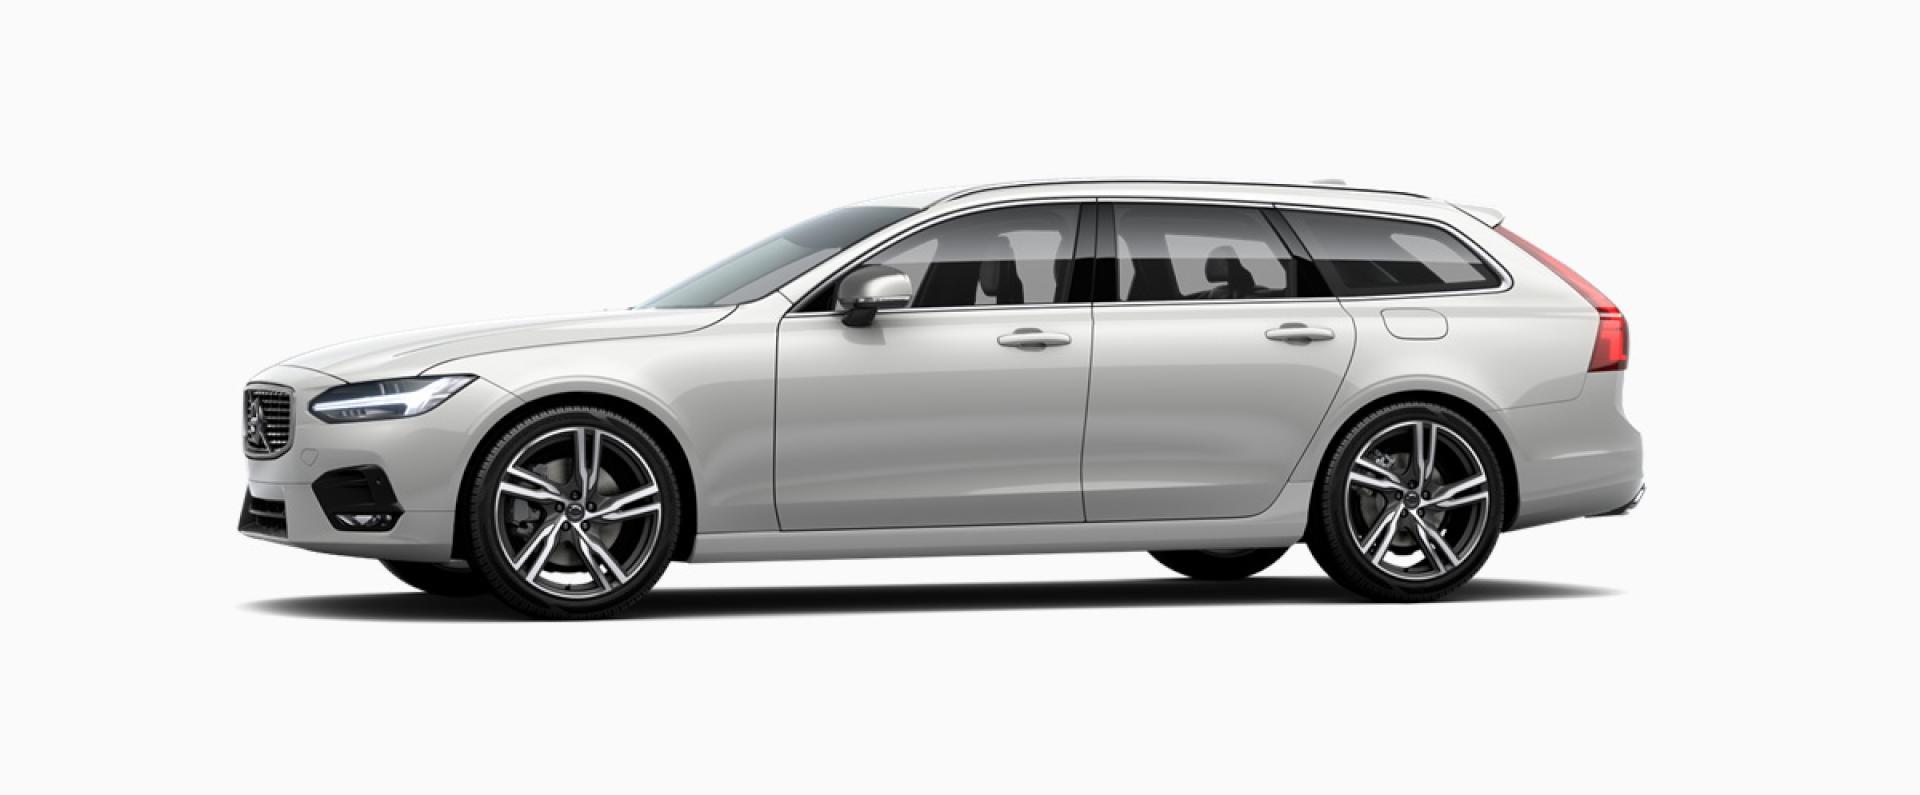 volvo v90 t8 awd r design baldegger automobile ag. Black Bedroom Furniture Sets. Home Design Ideas